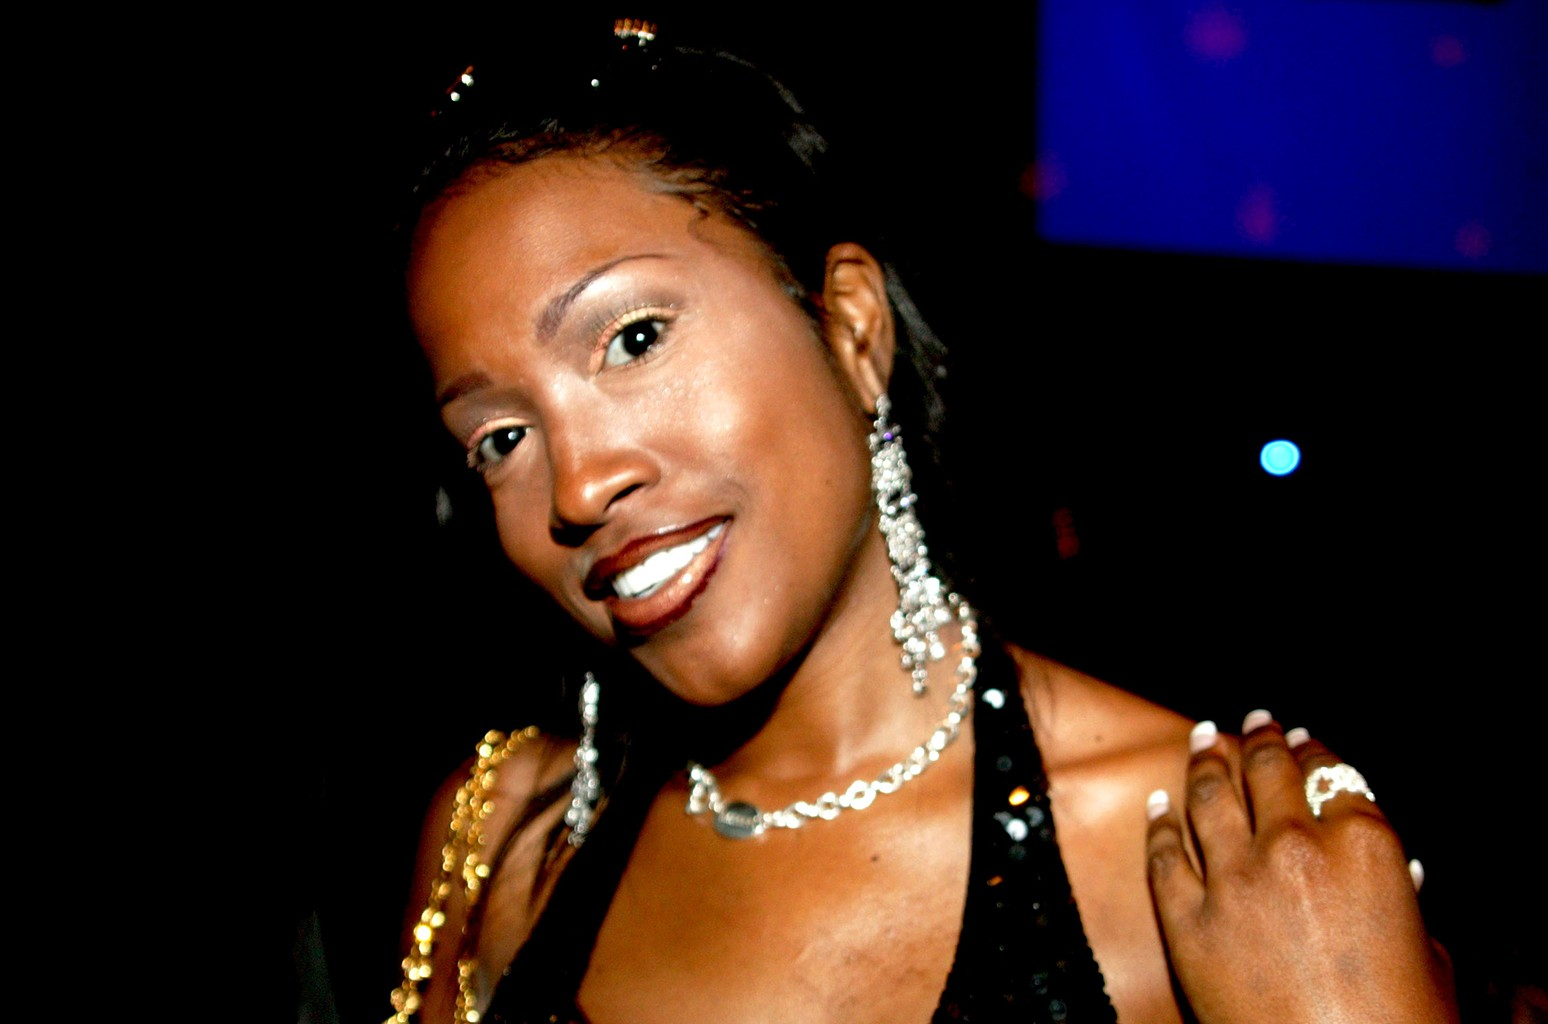 Maia Campbell photographed at Crobar in New York City.